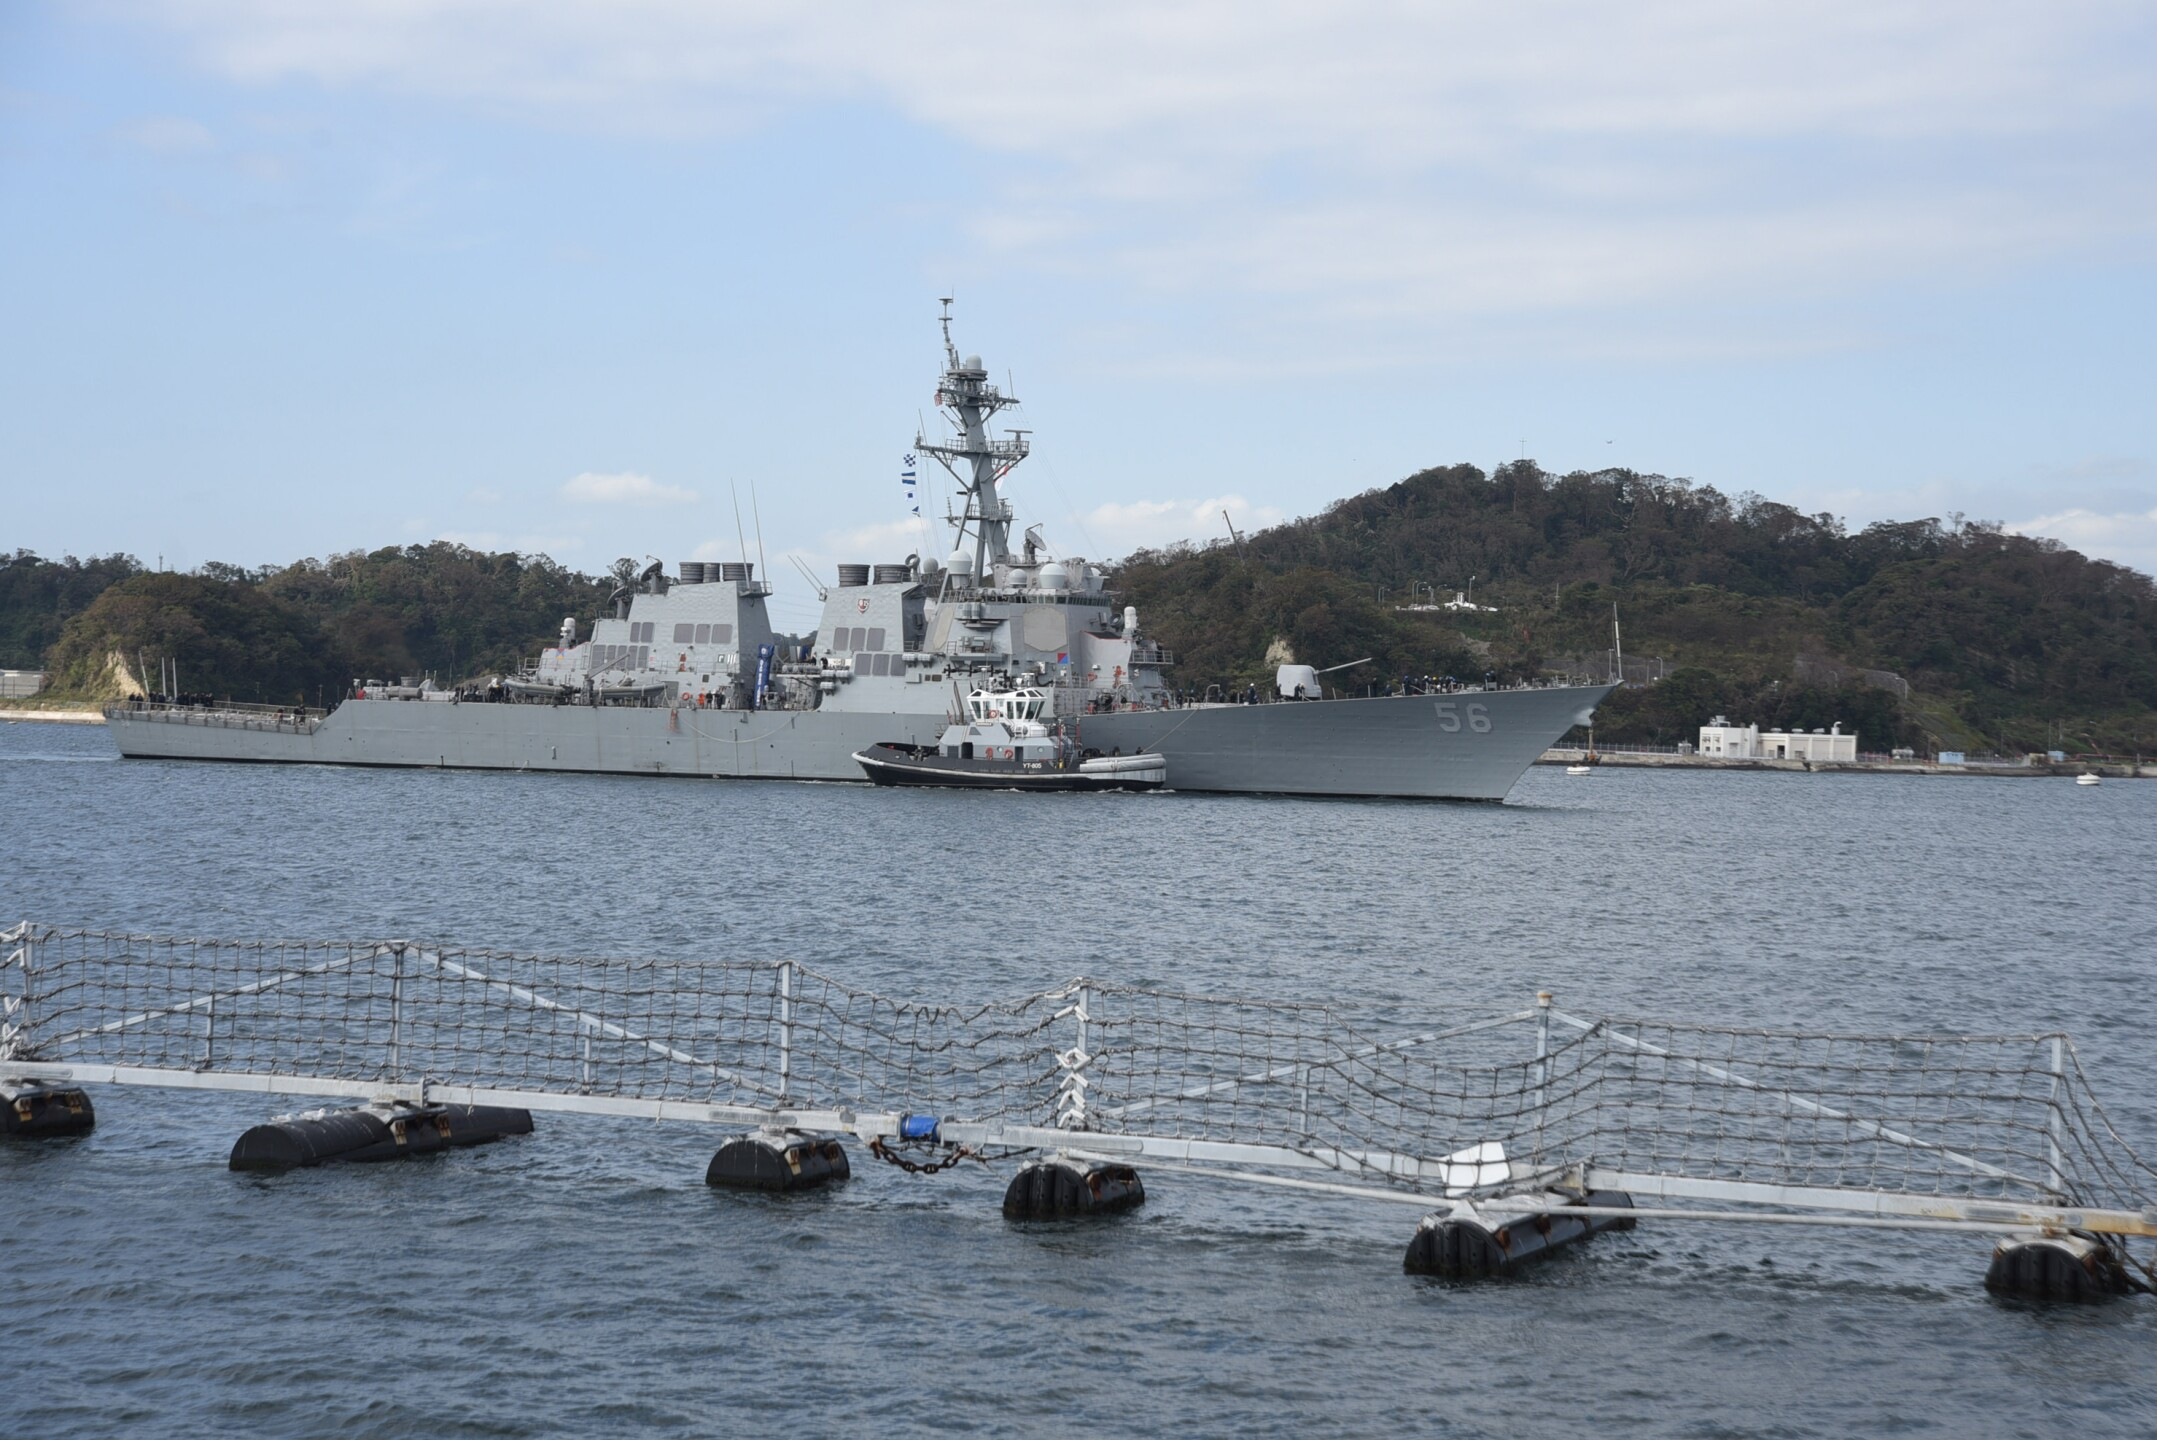 Photos: More than two years after deadly collision, USS John S. McCain returns tosea